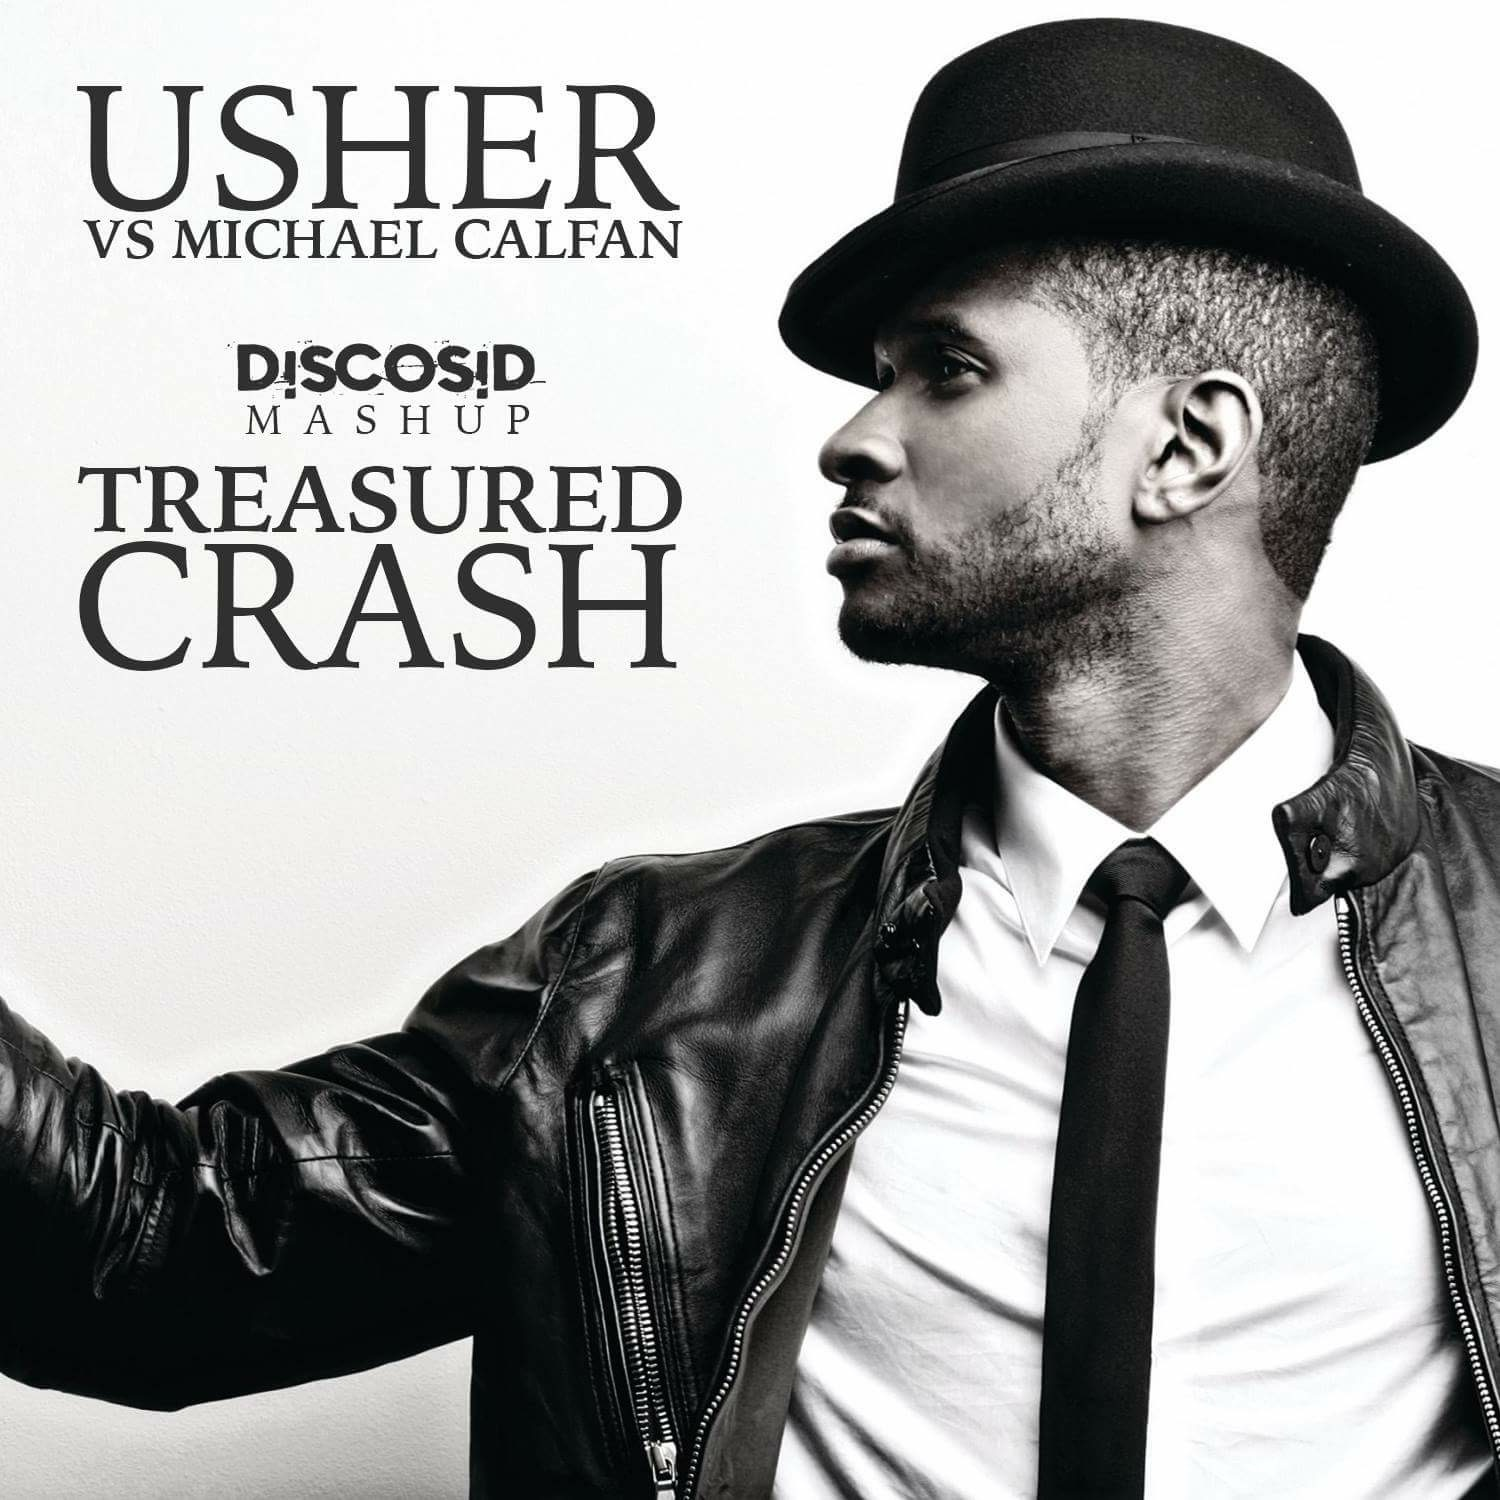 Usher Vs Michael Calfan - Treasured Crash (Discosid Mashup)